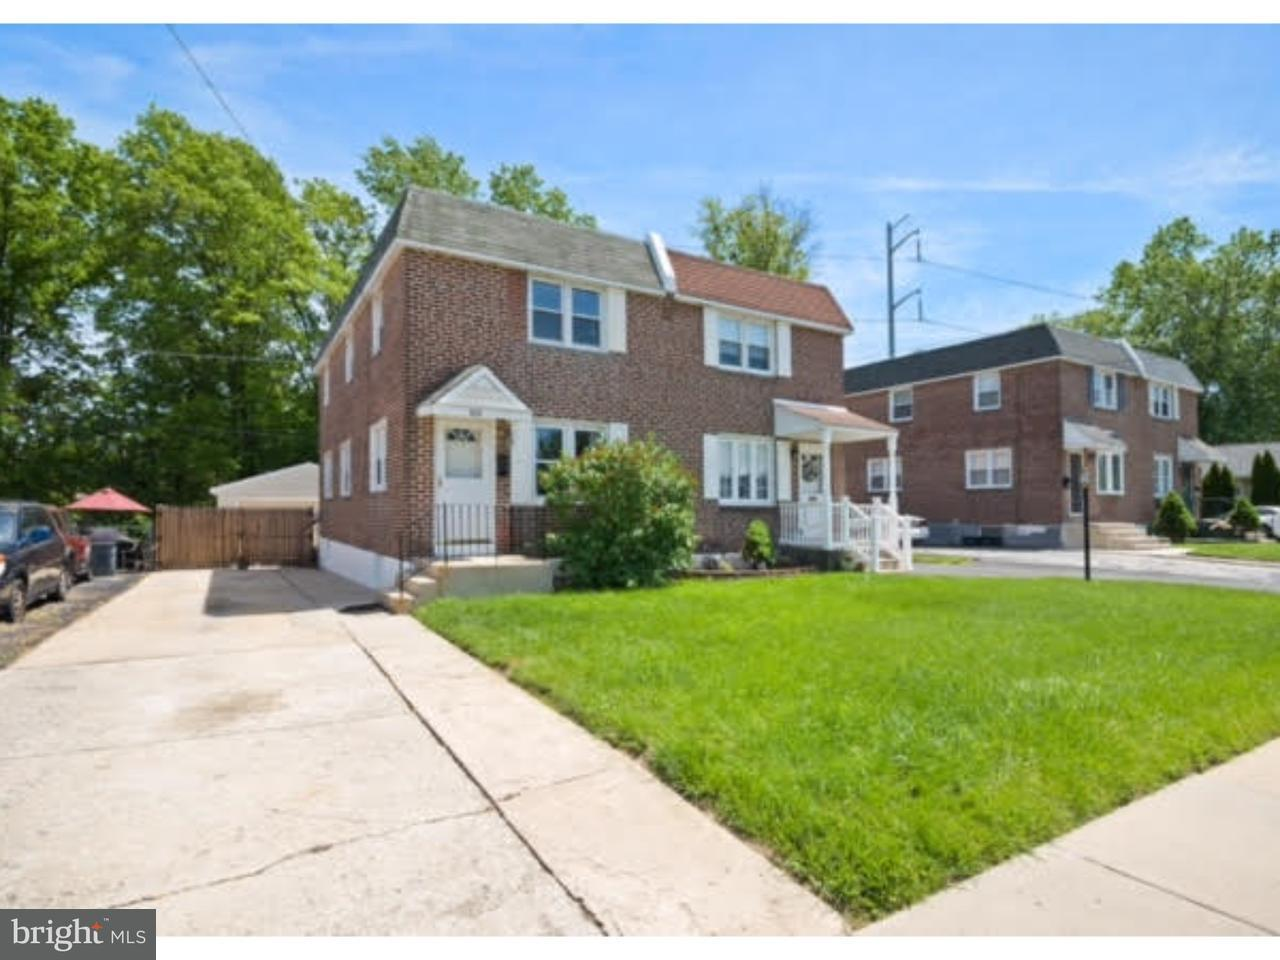 824  Haverford Ridley Park, PA 19078